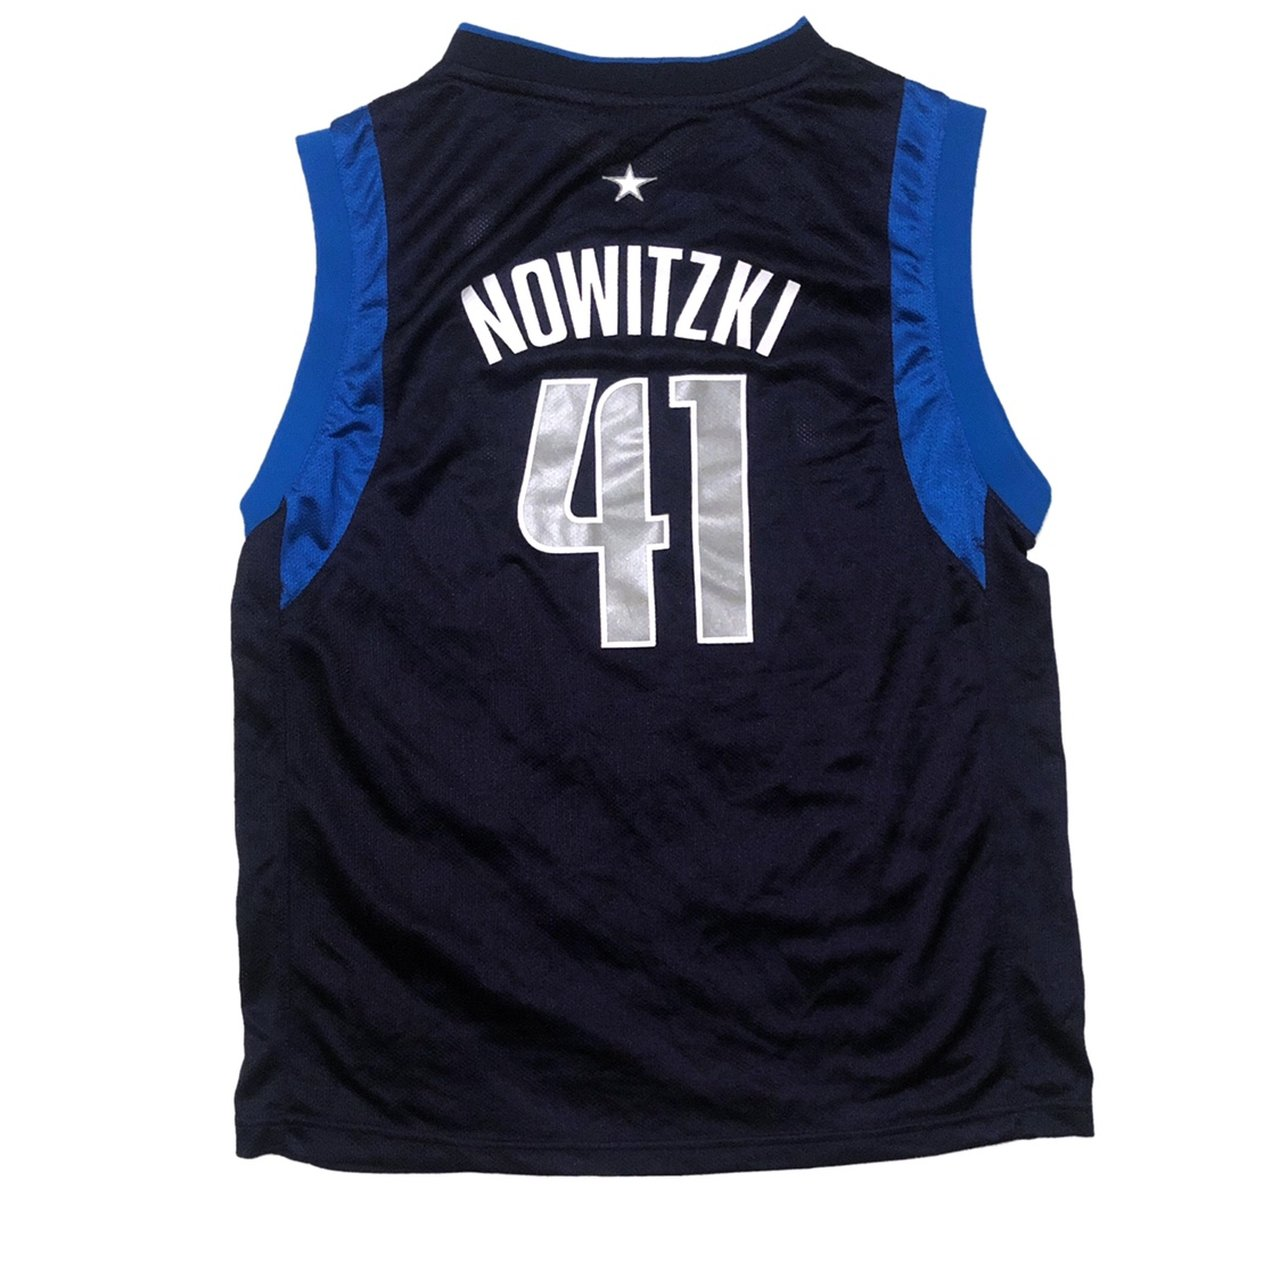 Official Reebok Dirk Nowitzki Jersey size youth large or XS. - Depop 80b8e4360